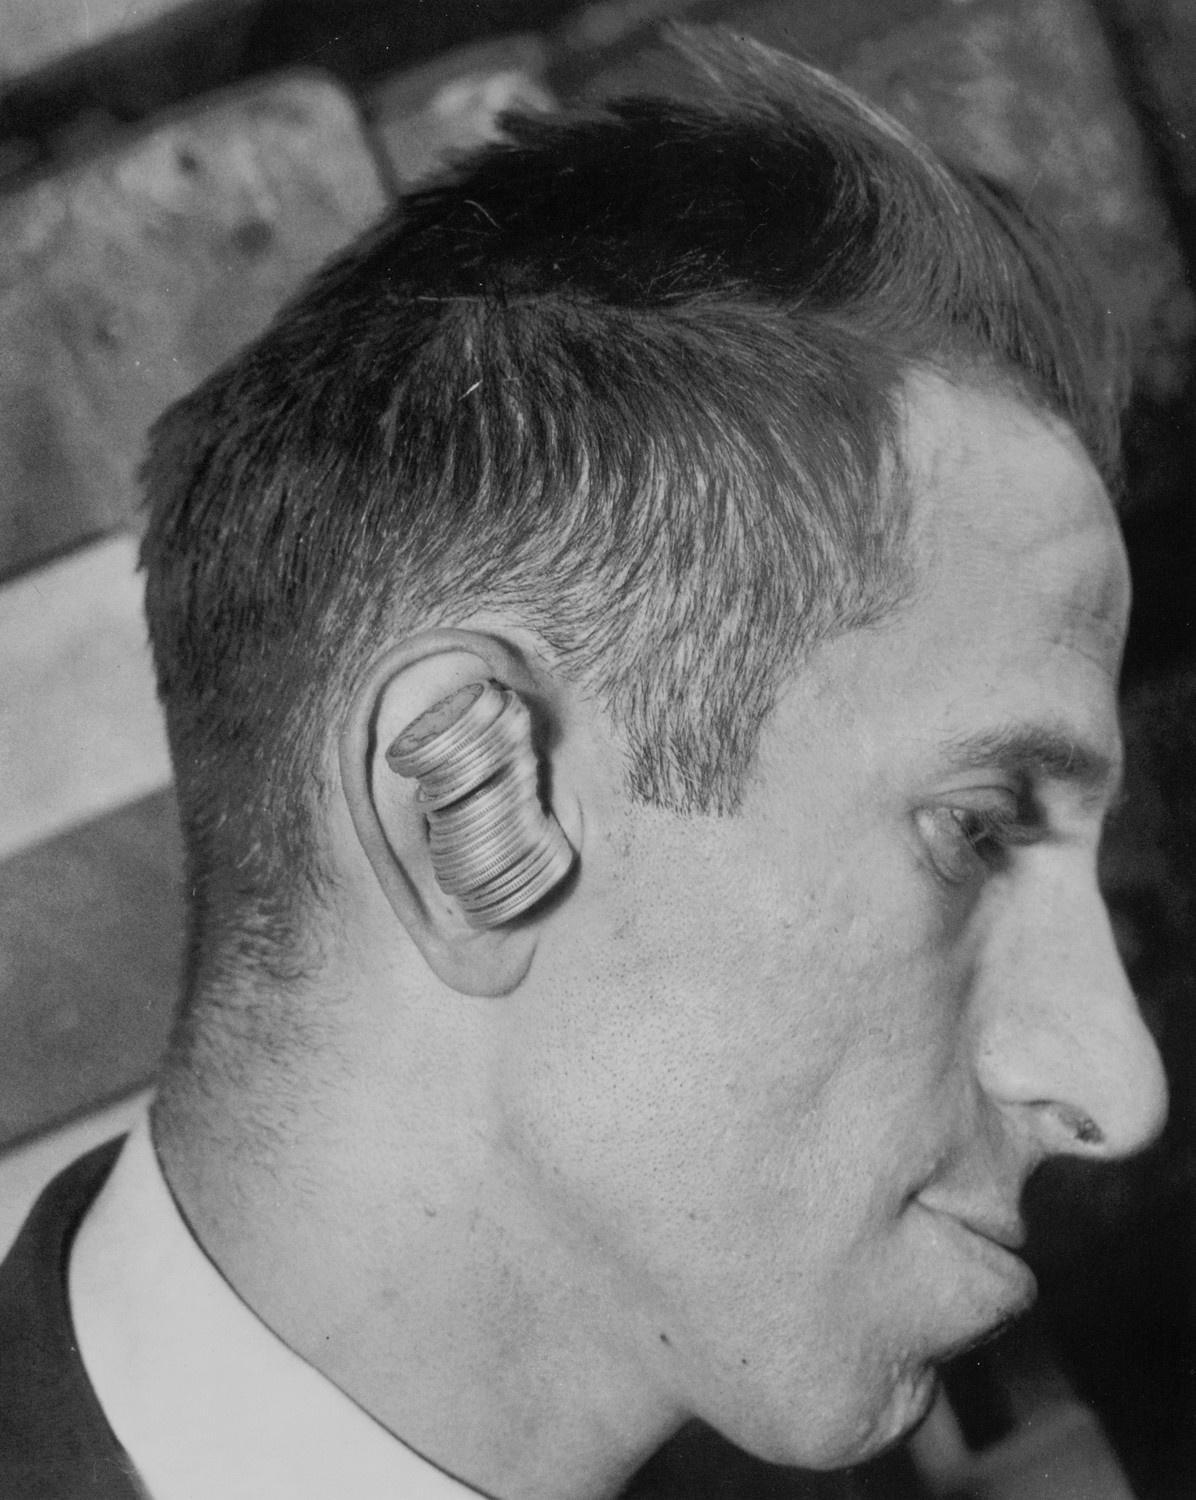 Brooklyn's Max Calvin never needed to fish for change. He could hold twenty-five quarters in his ear! (July 15, 1933)